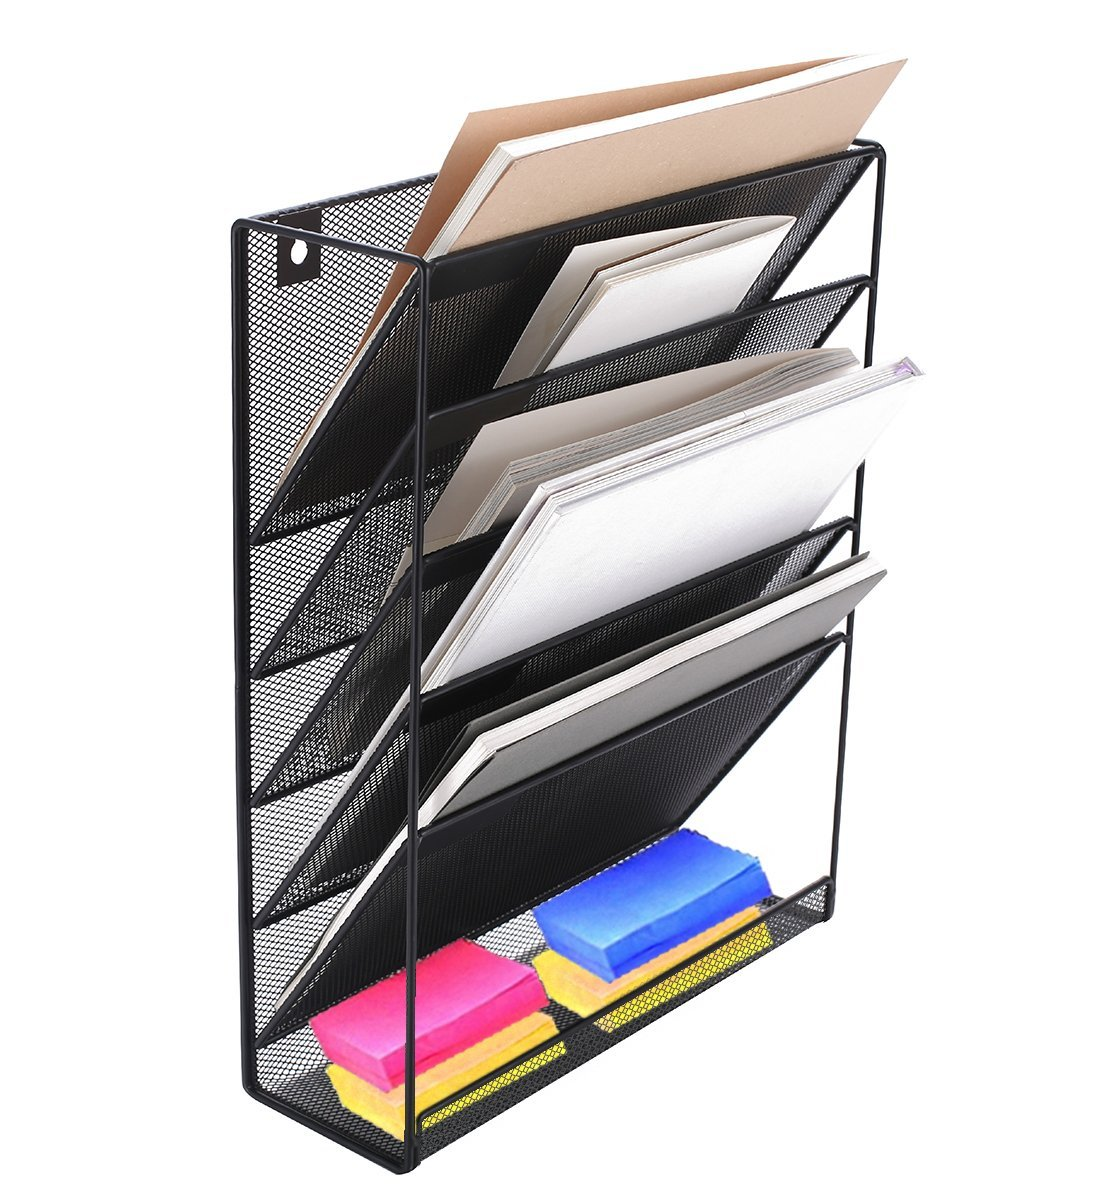 Wall Mounted File Organizer Holder Metal Mesh Magazine Rack for Office and Study Room, Black